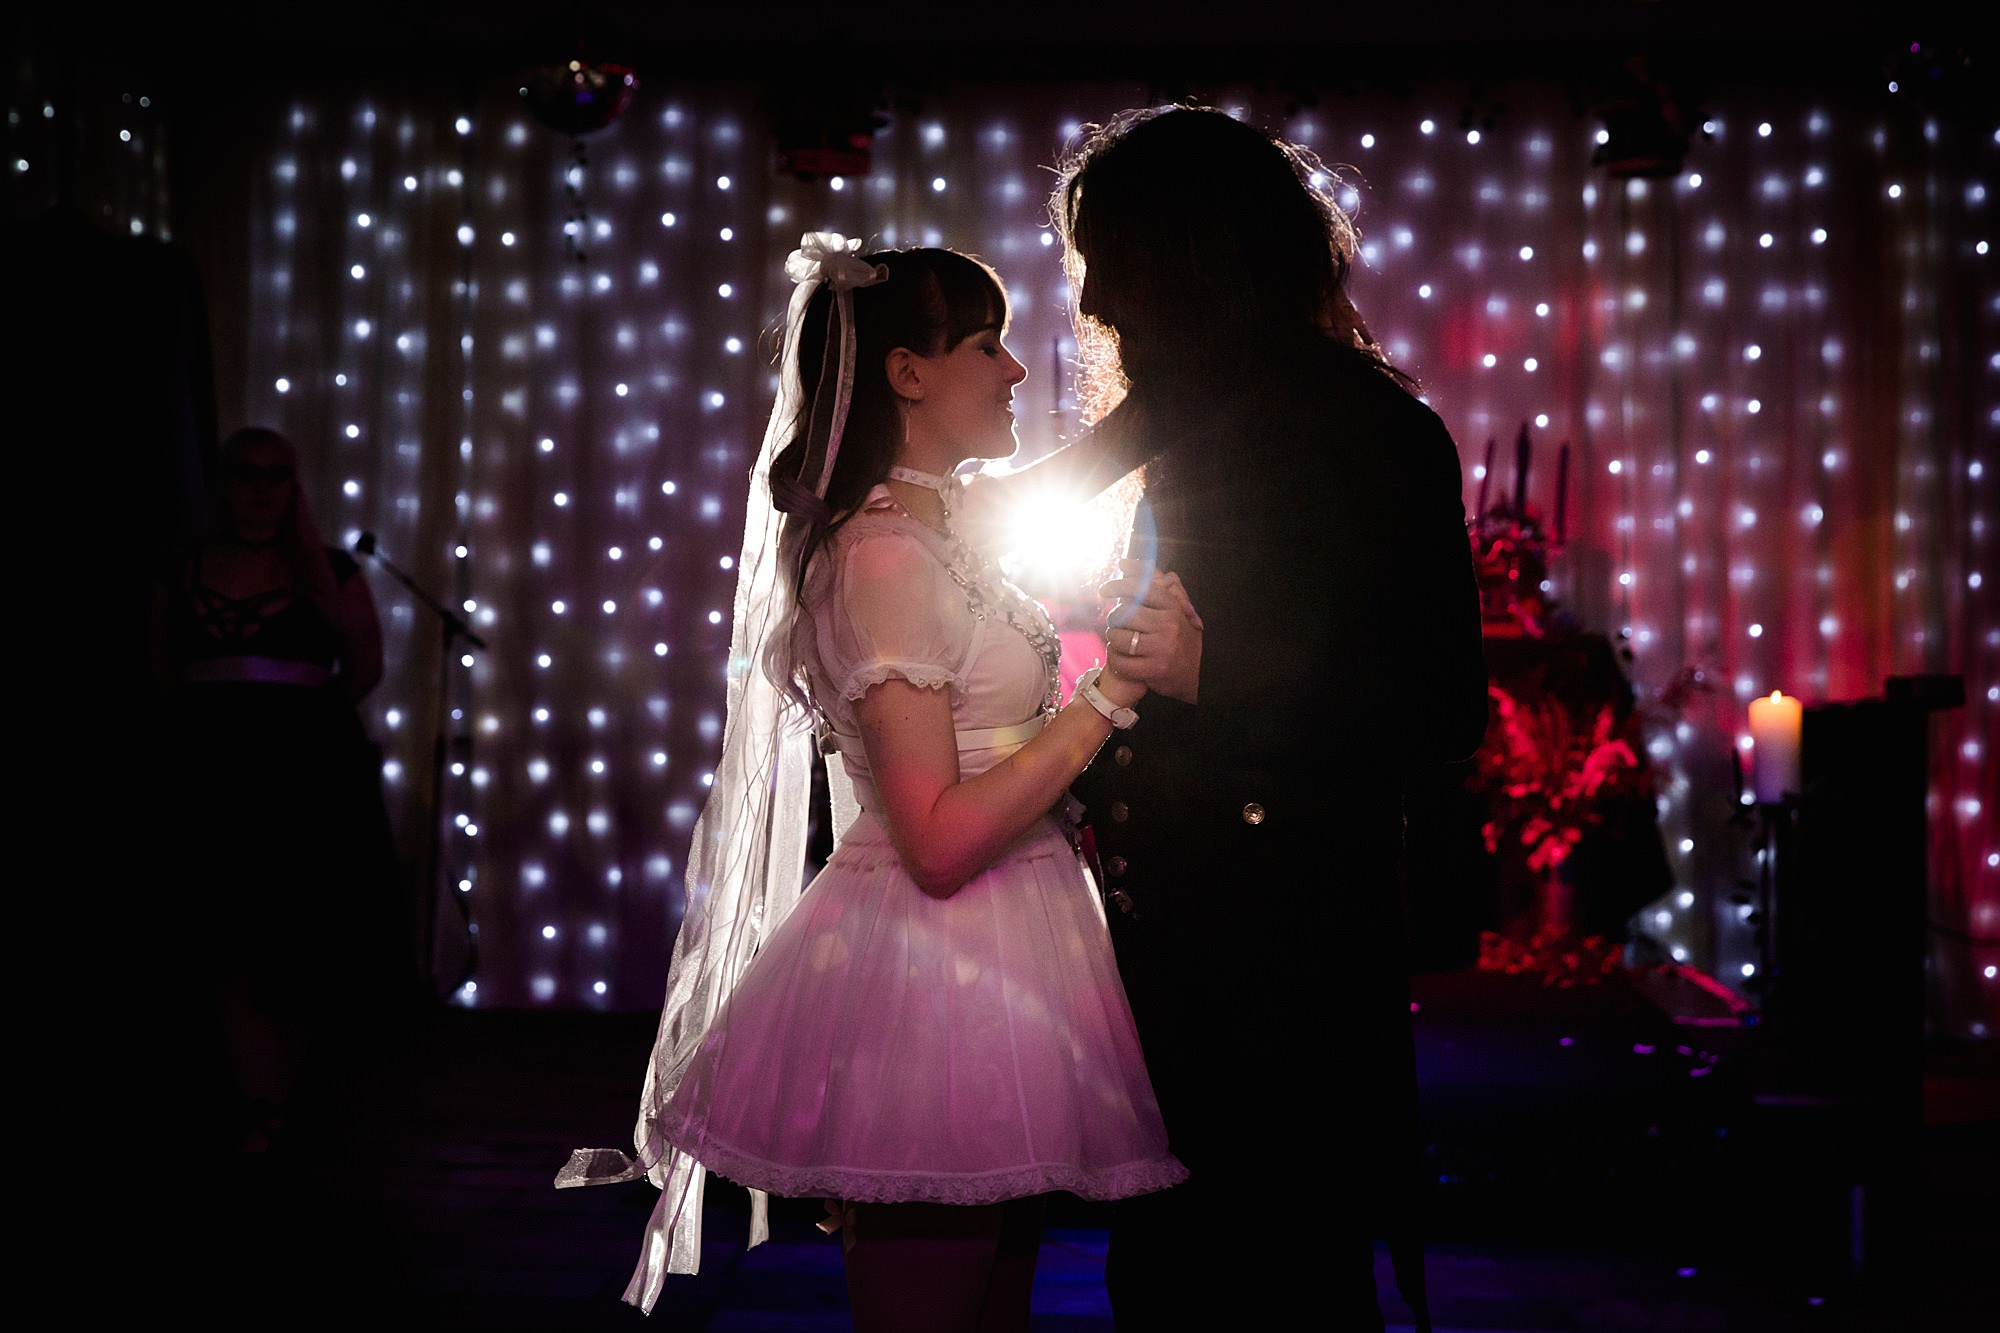 bride and groom's first dance in front of fairy lights at goth wedding